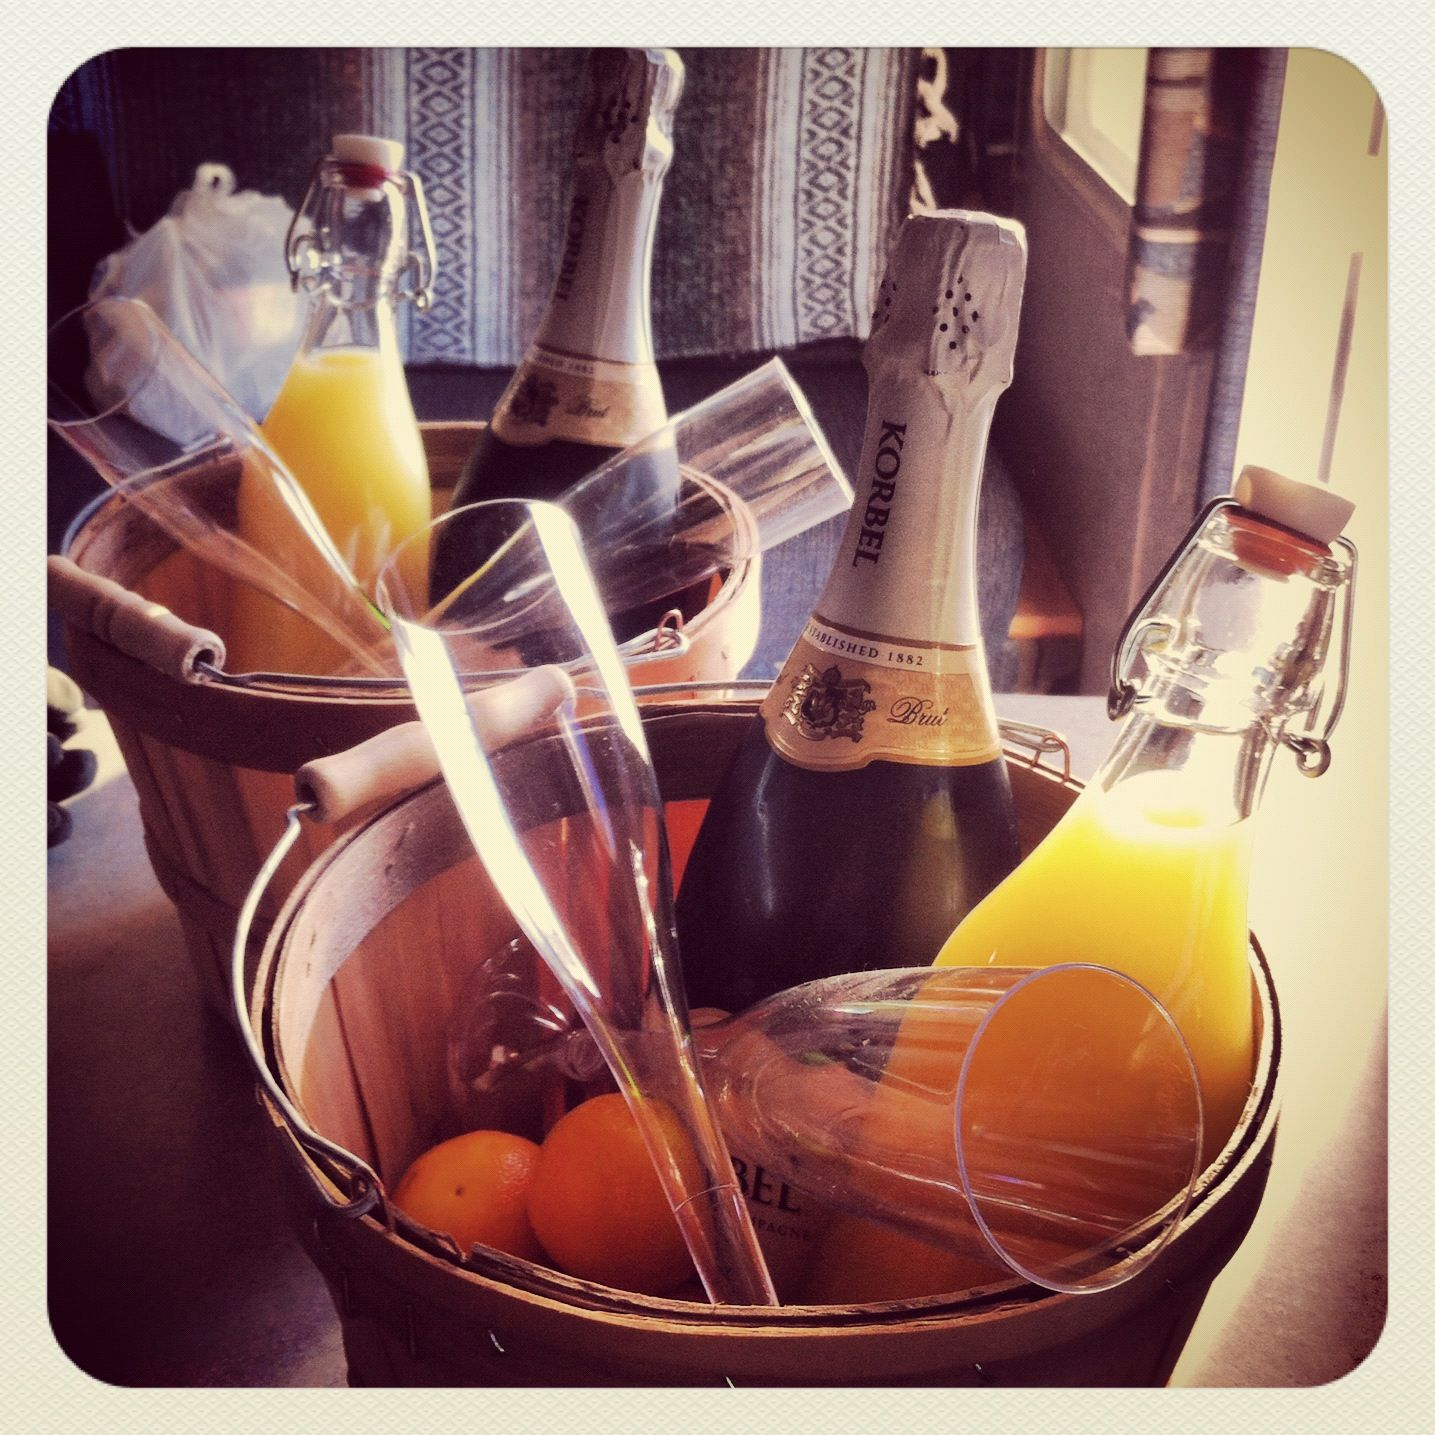 Wedding Night Basket Ideas: Mimosa Morning Gift Baskets.